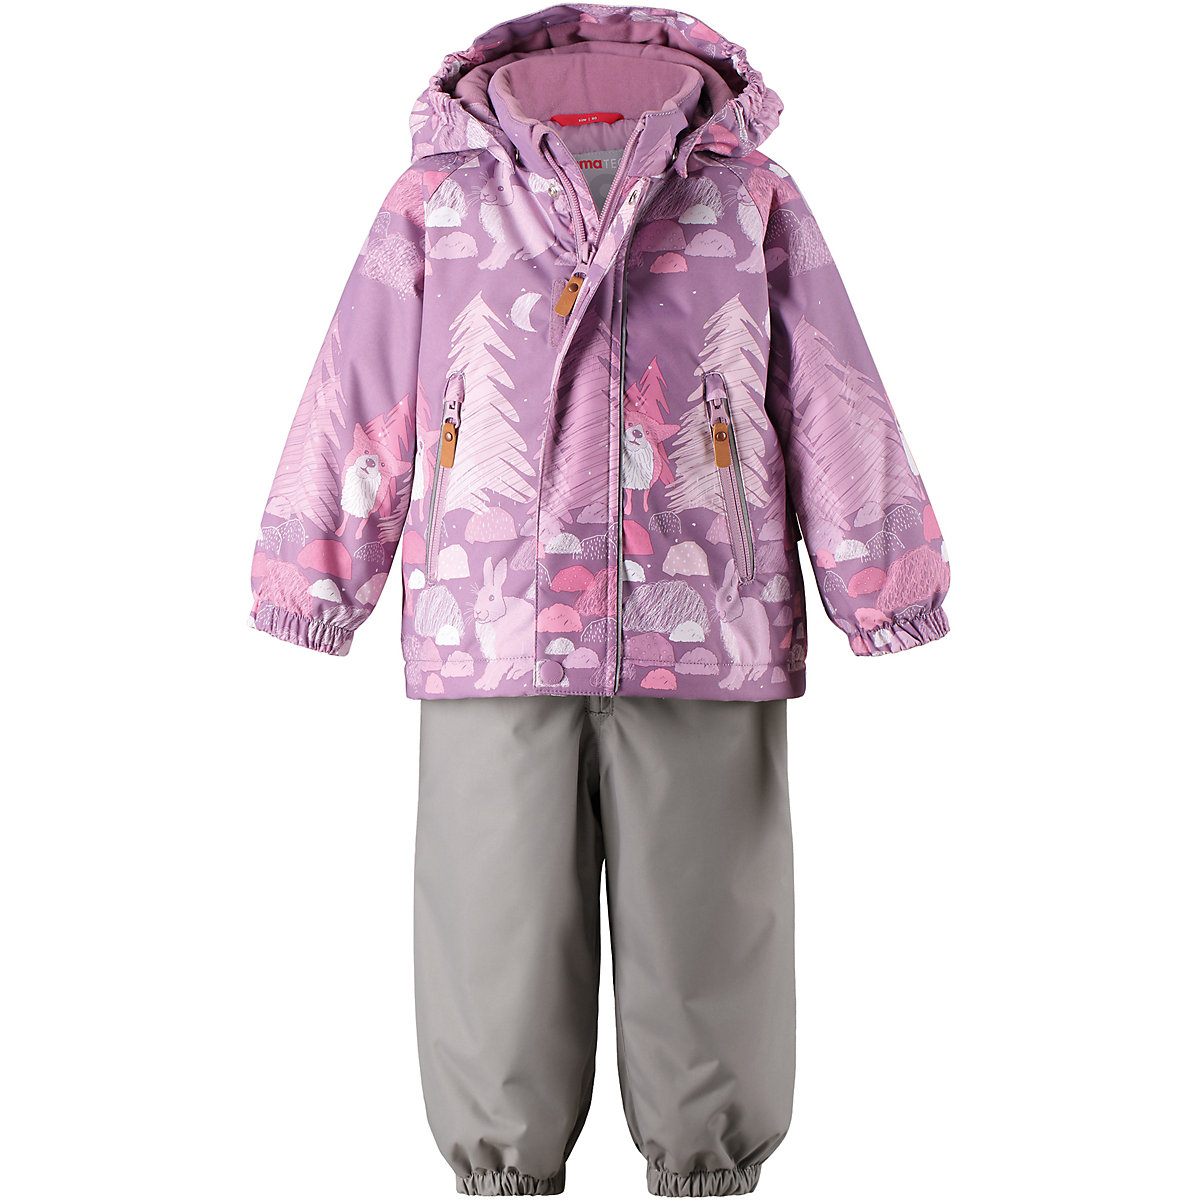 REIMA Childrens Sets 8689282 for girls children clothing winter stuff Suit set Jacket pants children clothing set kids girl clothes 2016 girls sets brand floral dobby kids tracksuit jacket dress girls clothing sets